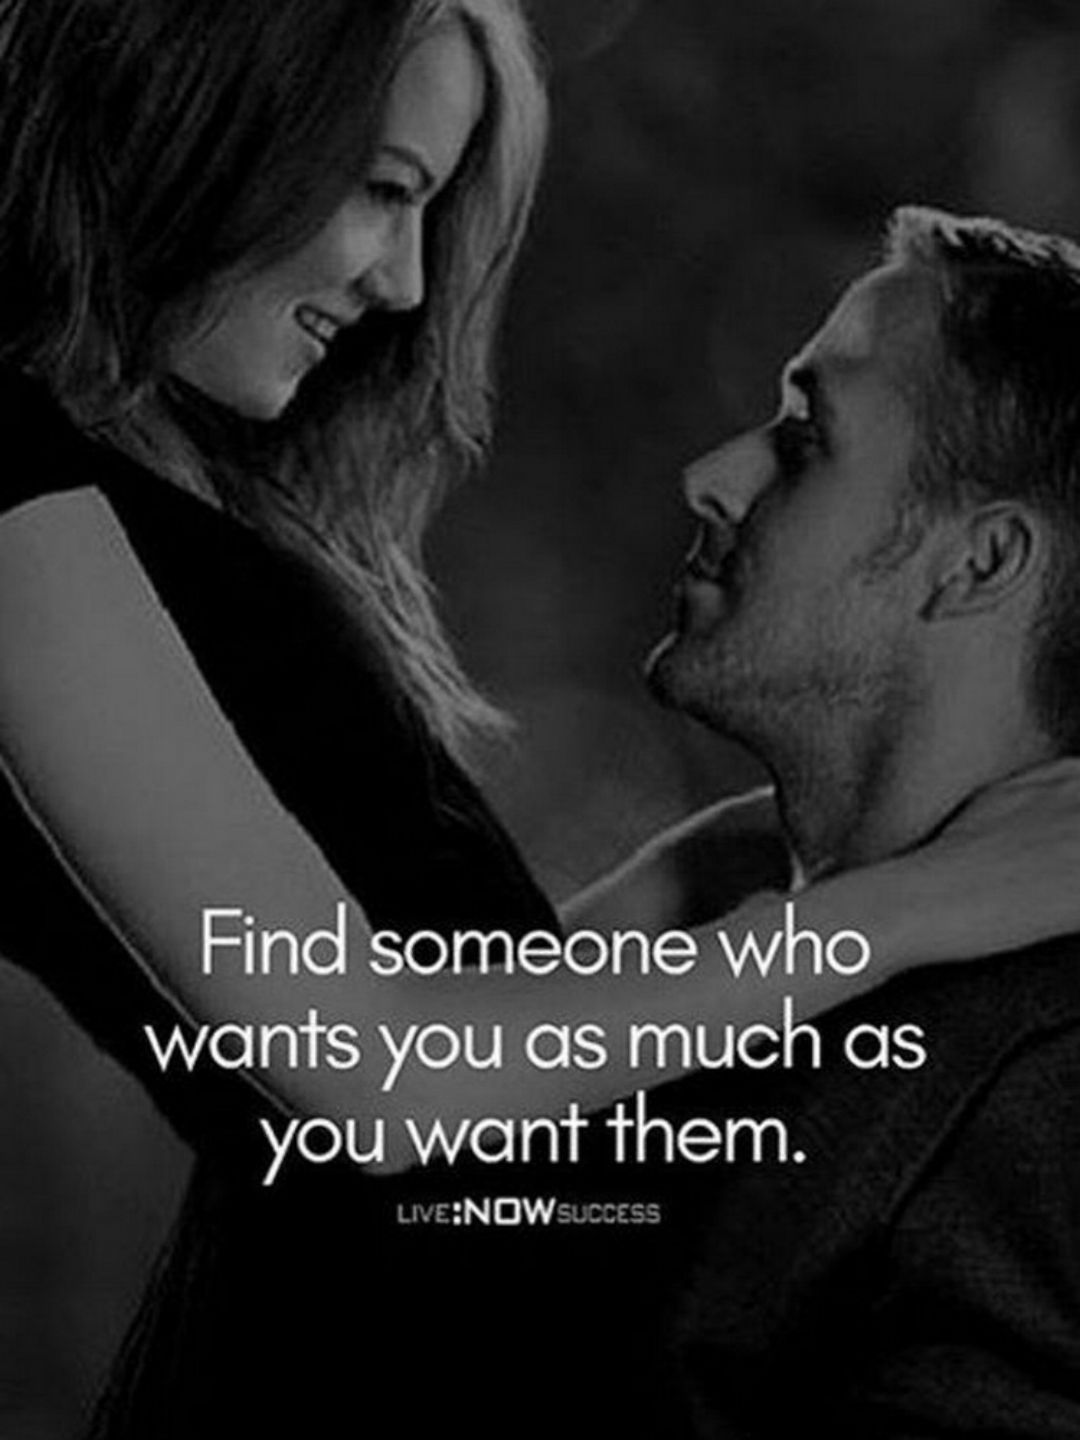 Positive Memes And Reaffirming Lifequoters Live Nowsuccess Positive Memes Love Quotes For Him Dating Humor Quotes